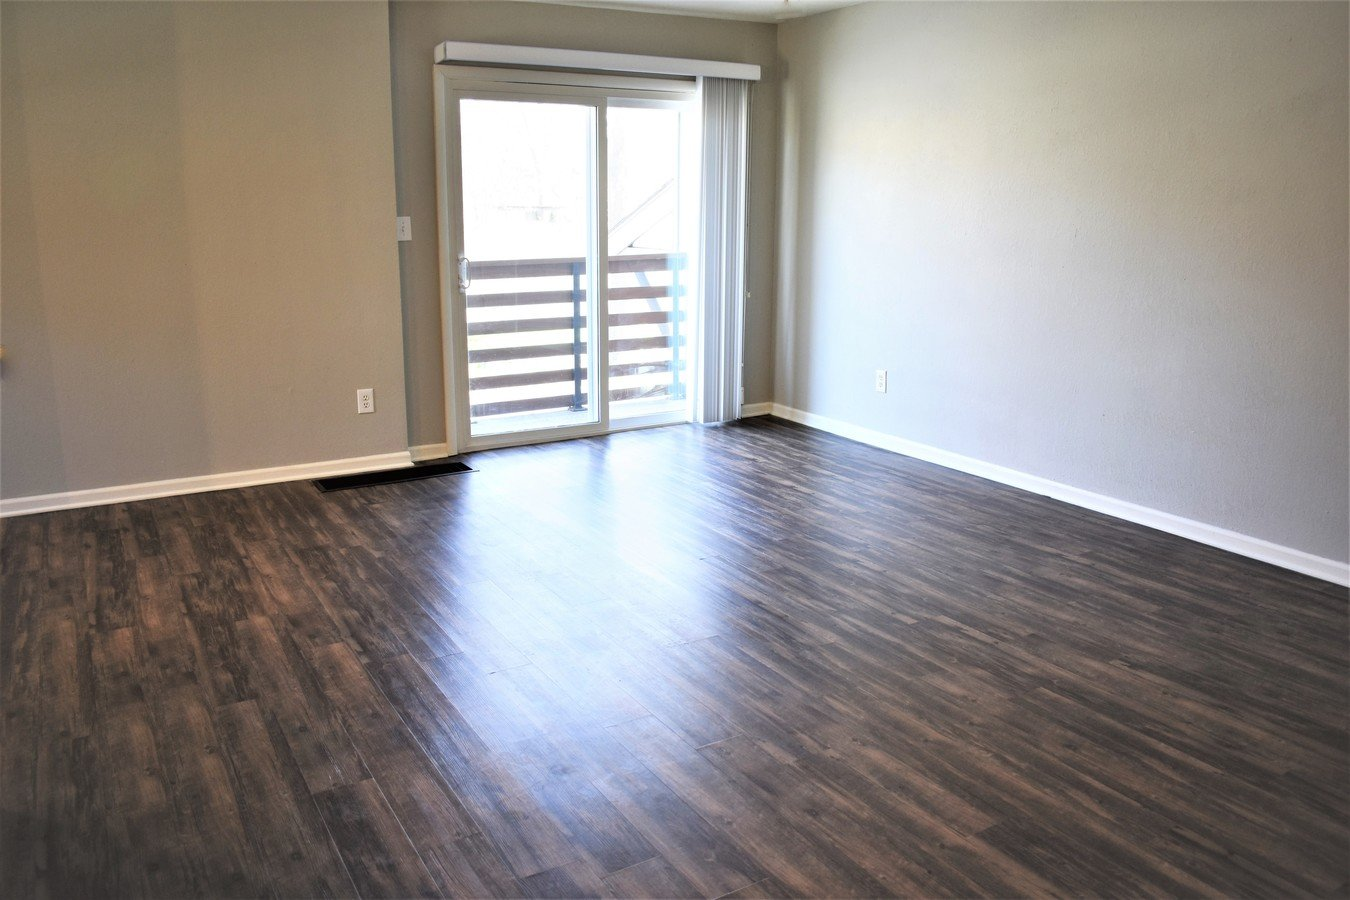 2 Bedrooms 1 Bathroom Apartment for rent at Kosobro in Kansas City, MO